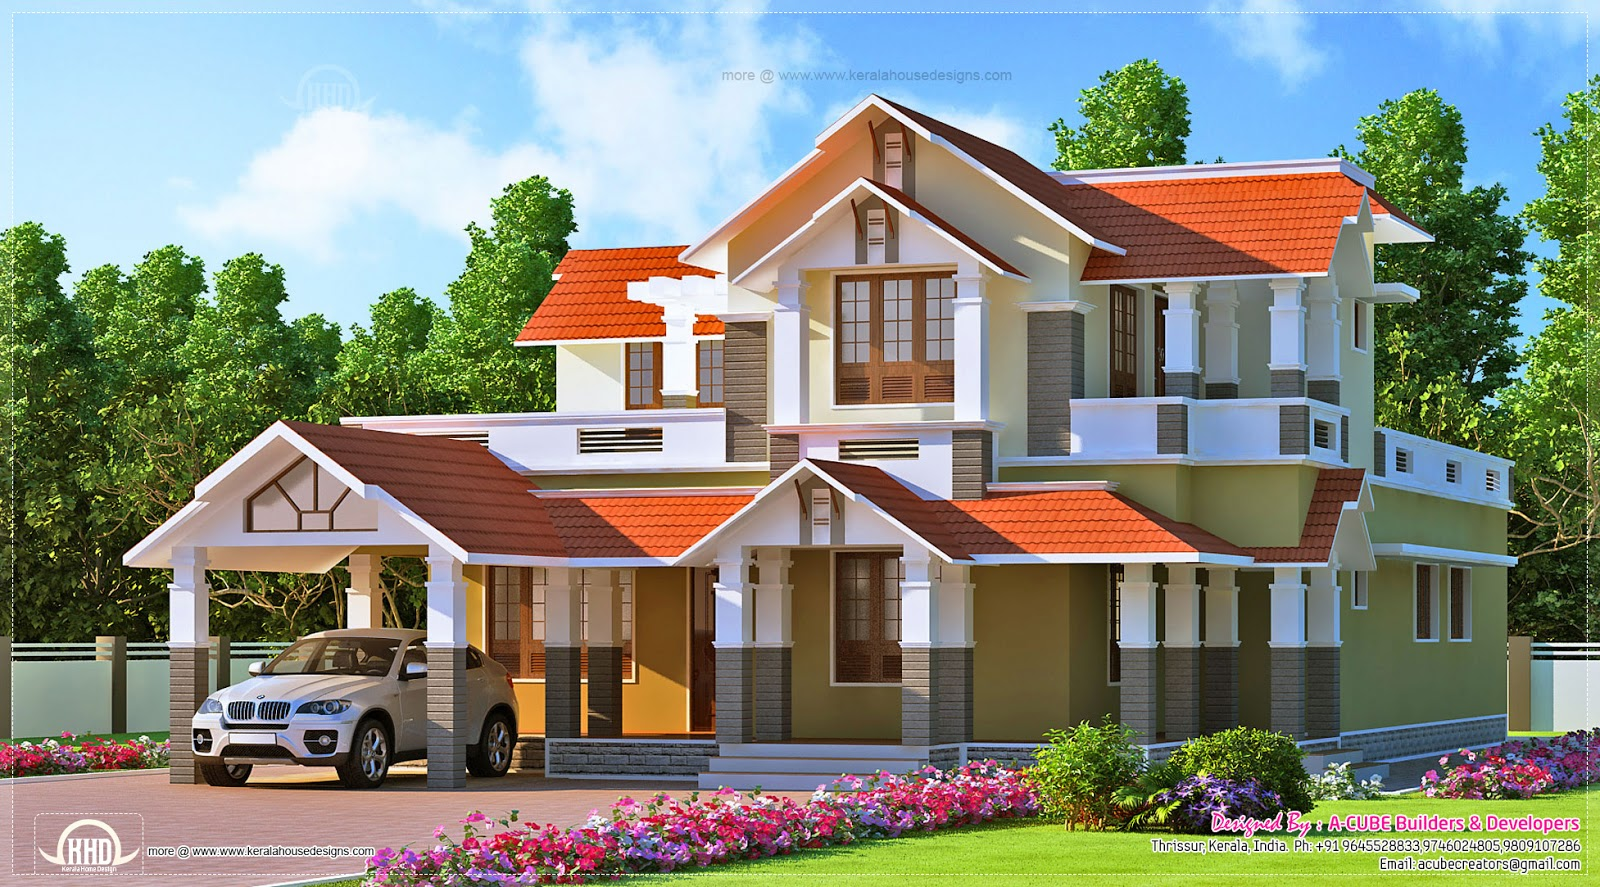 Kerala style dream home design in 2900 house for Dream home plans